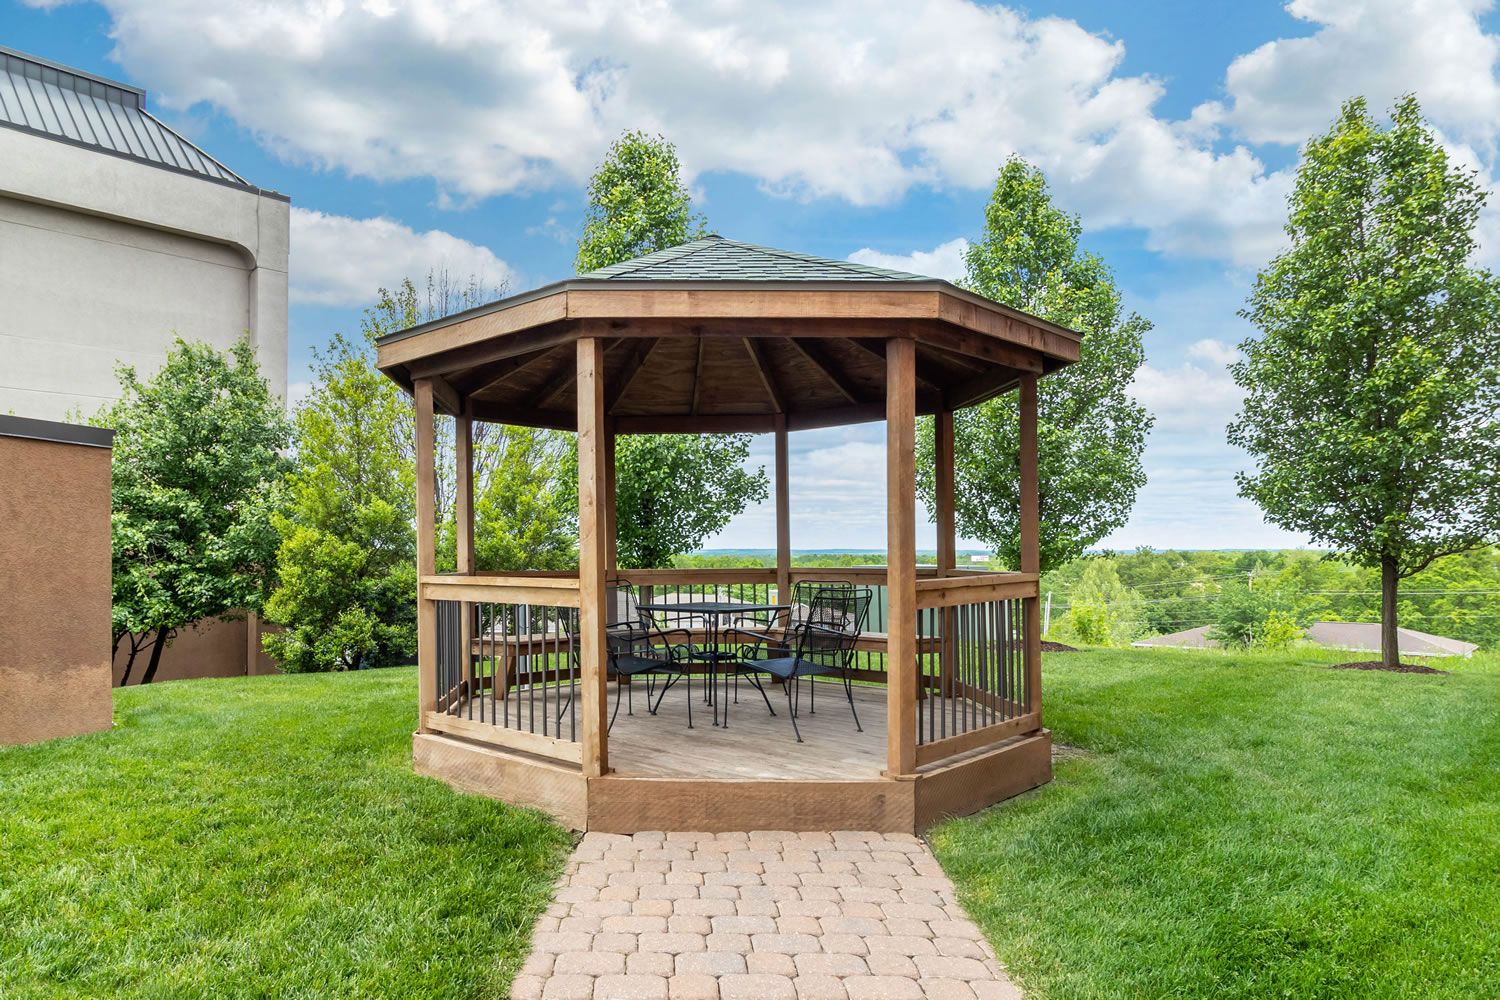 9 of 10 Comfort Inn Gazebo area